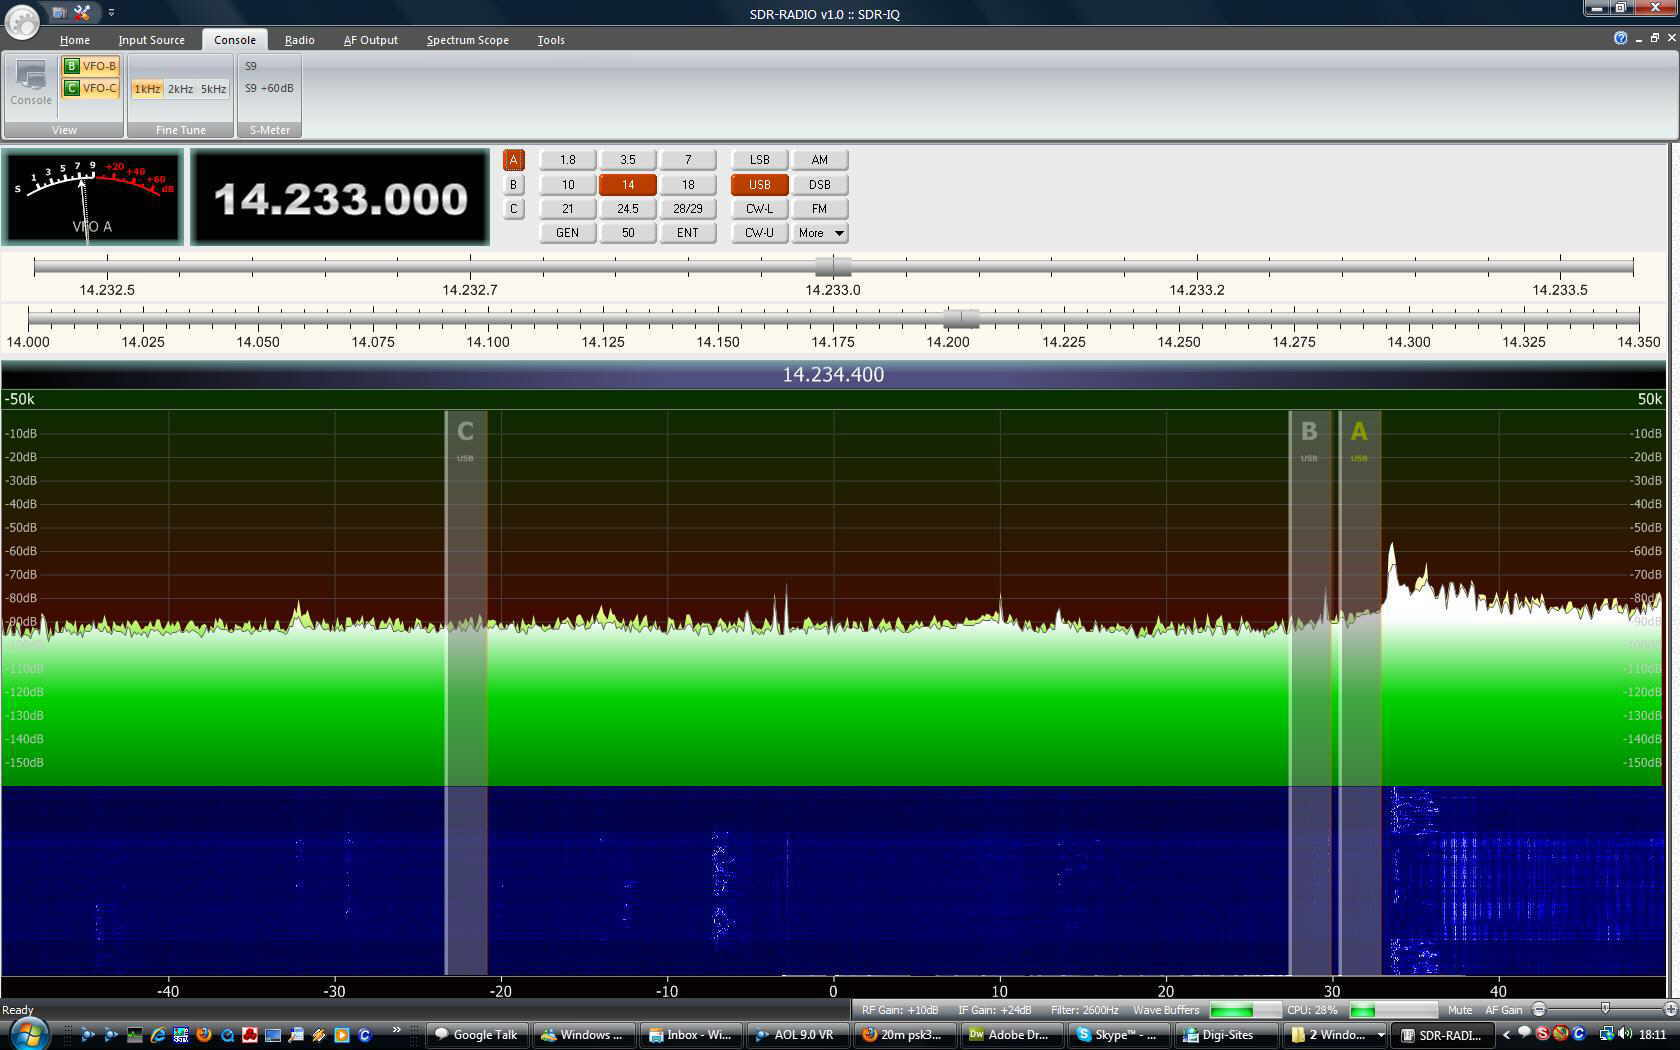 SDR radio via the internet